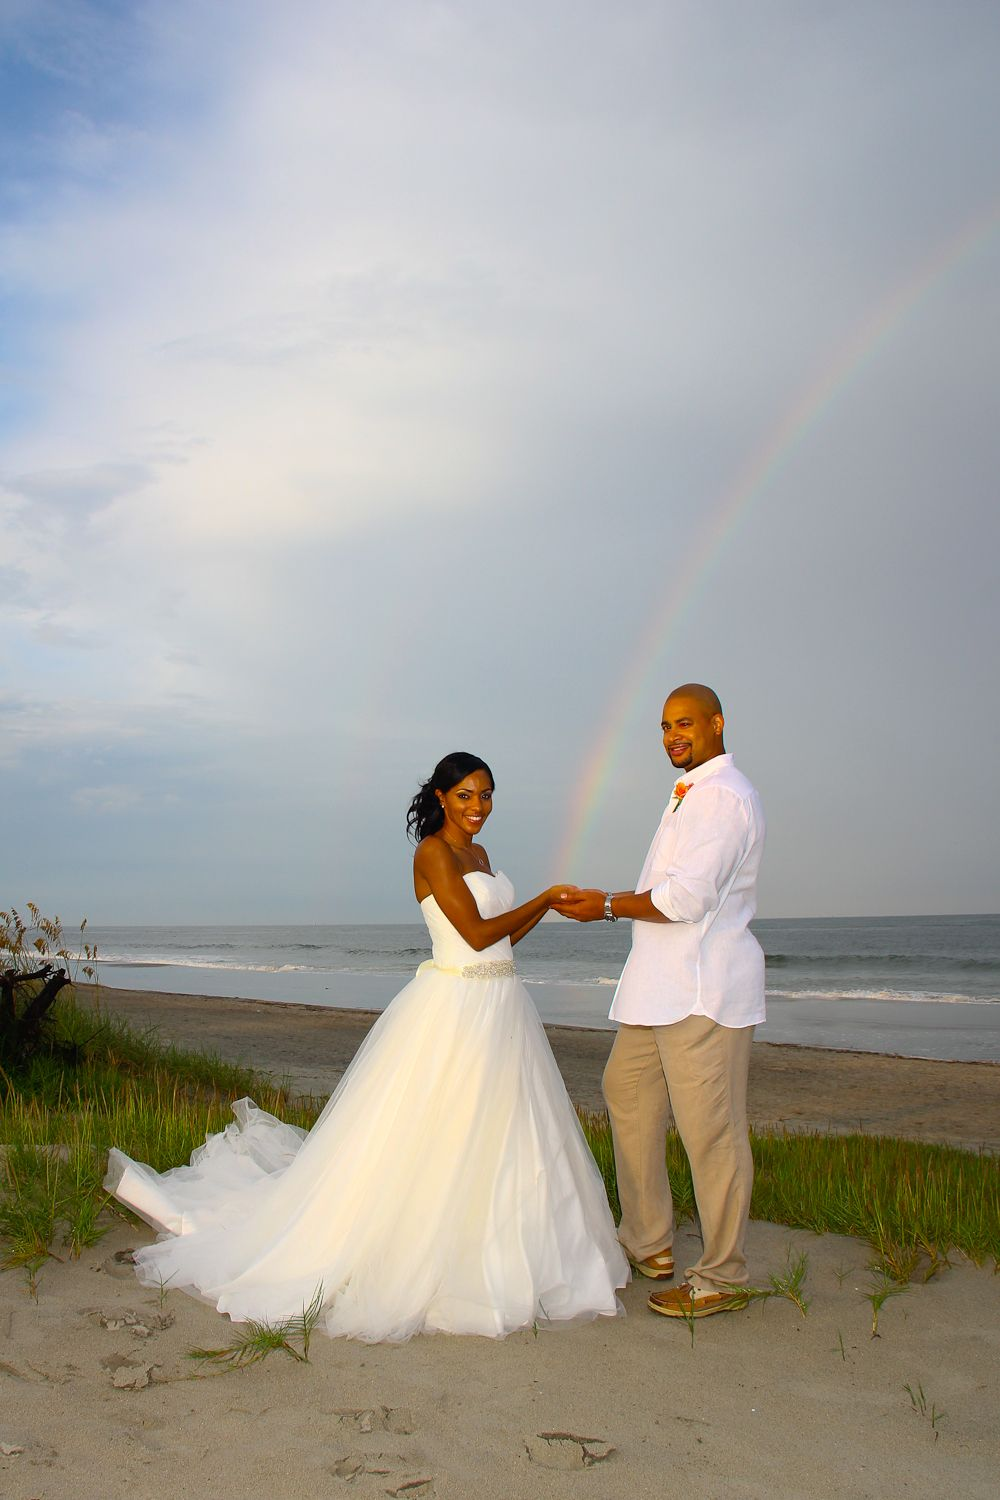 5570fb929e95a0659995ff68e3b959f4 - savannah ga beach wedding